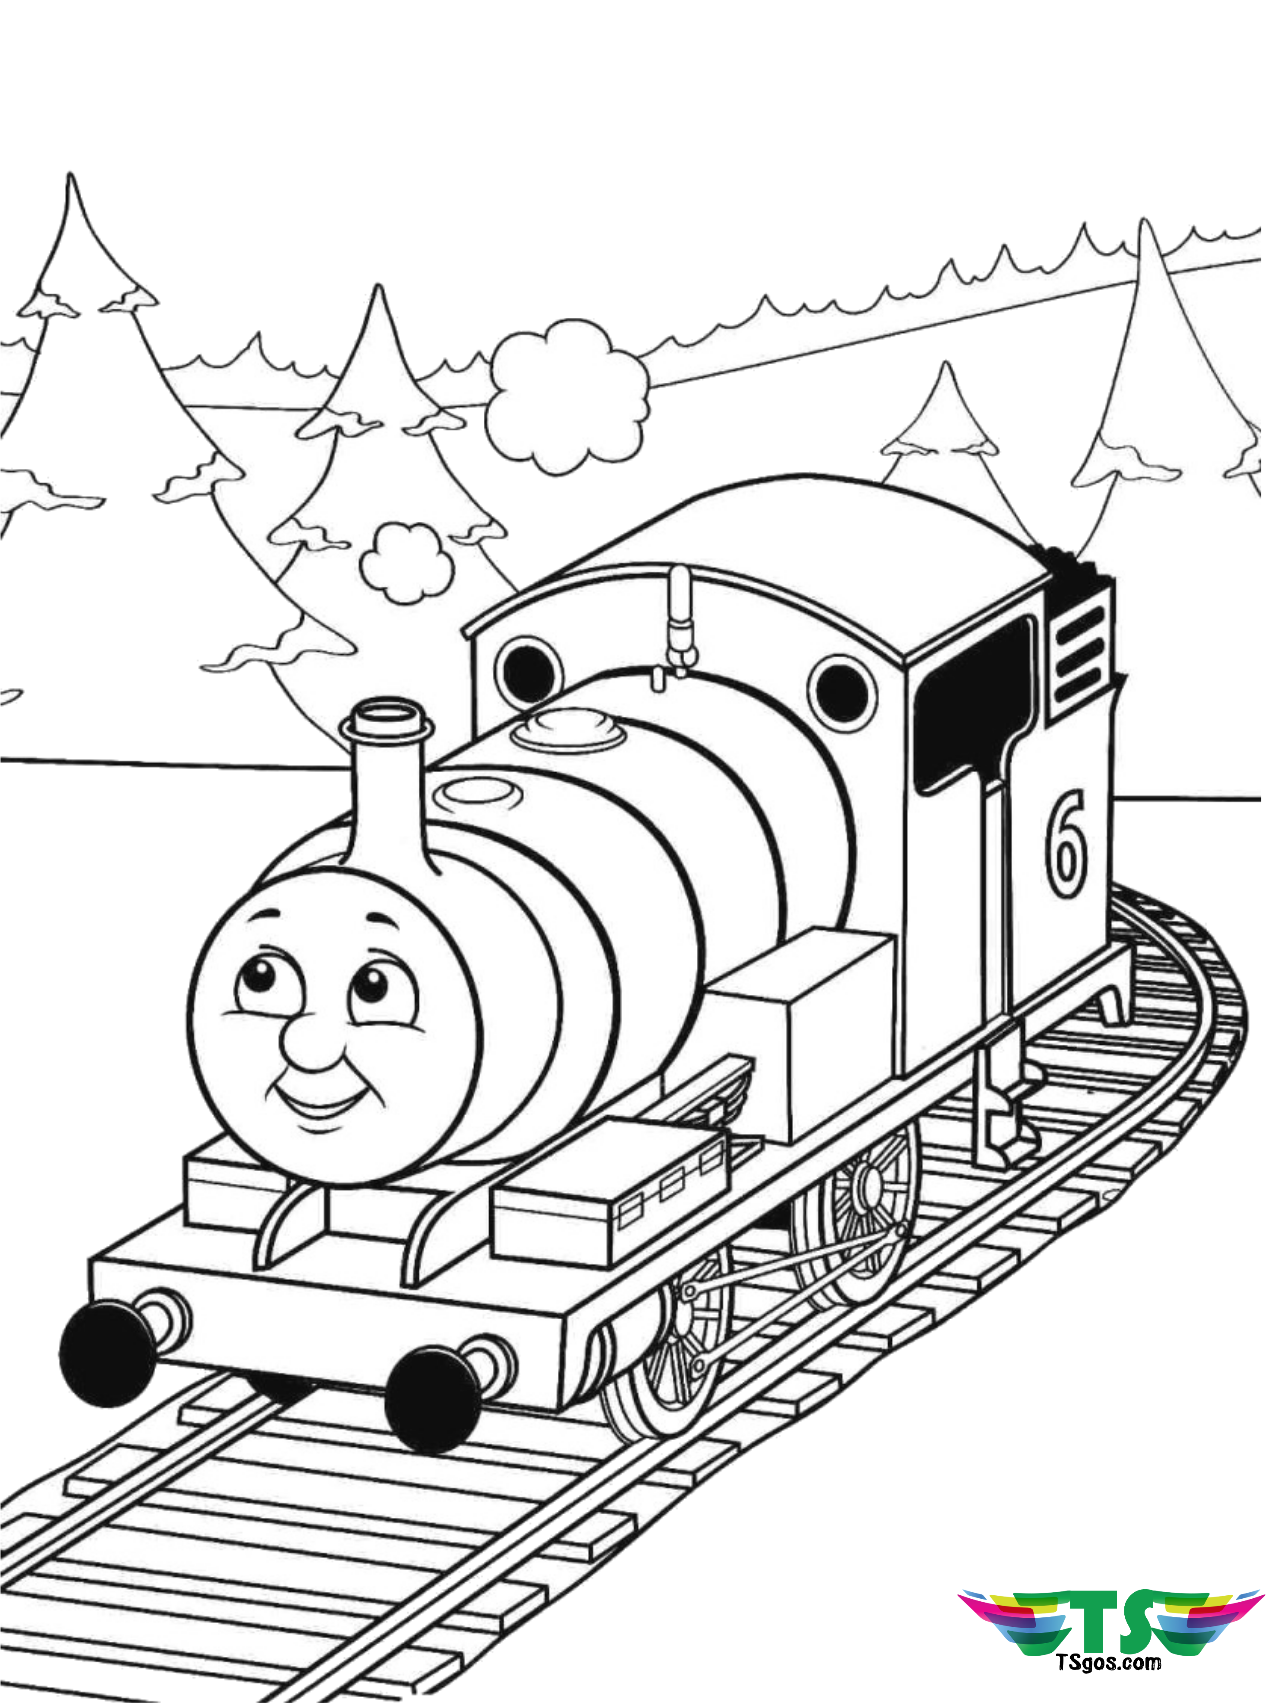 train engine coloring miscellaneous coloring pages free printable coloring pages train coloring engine